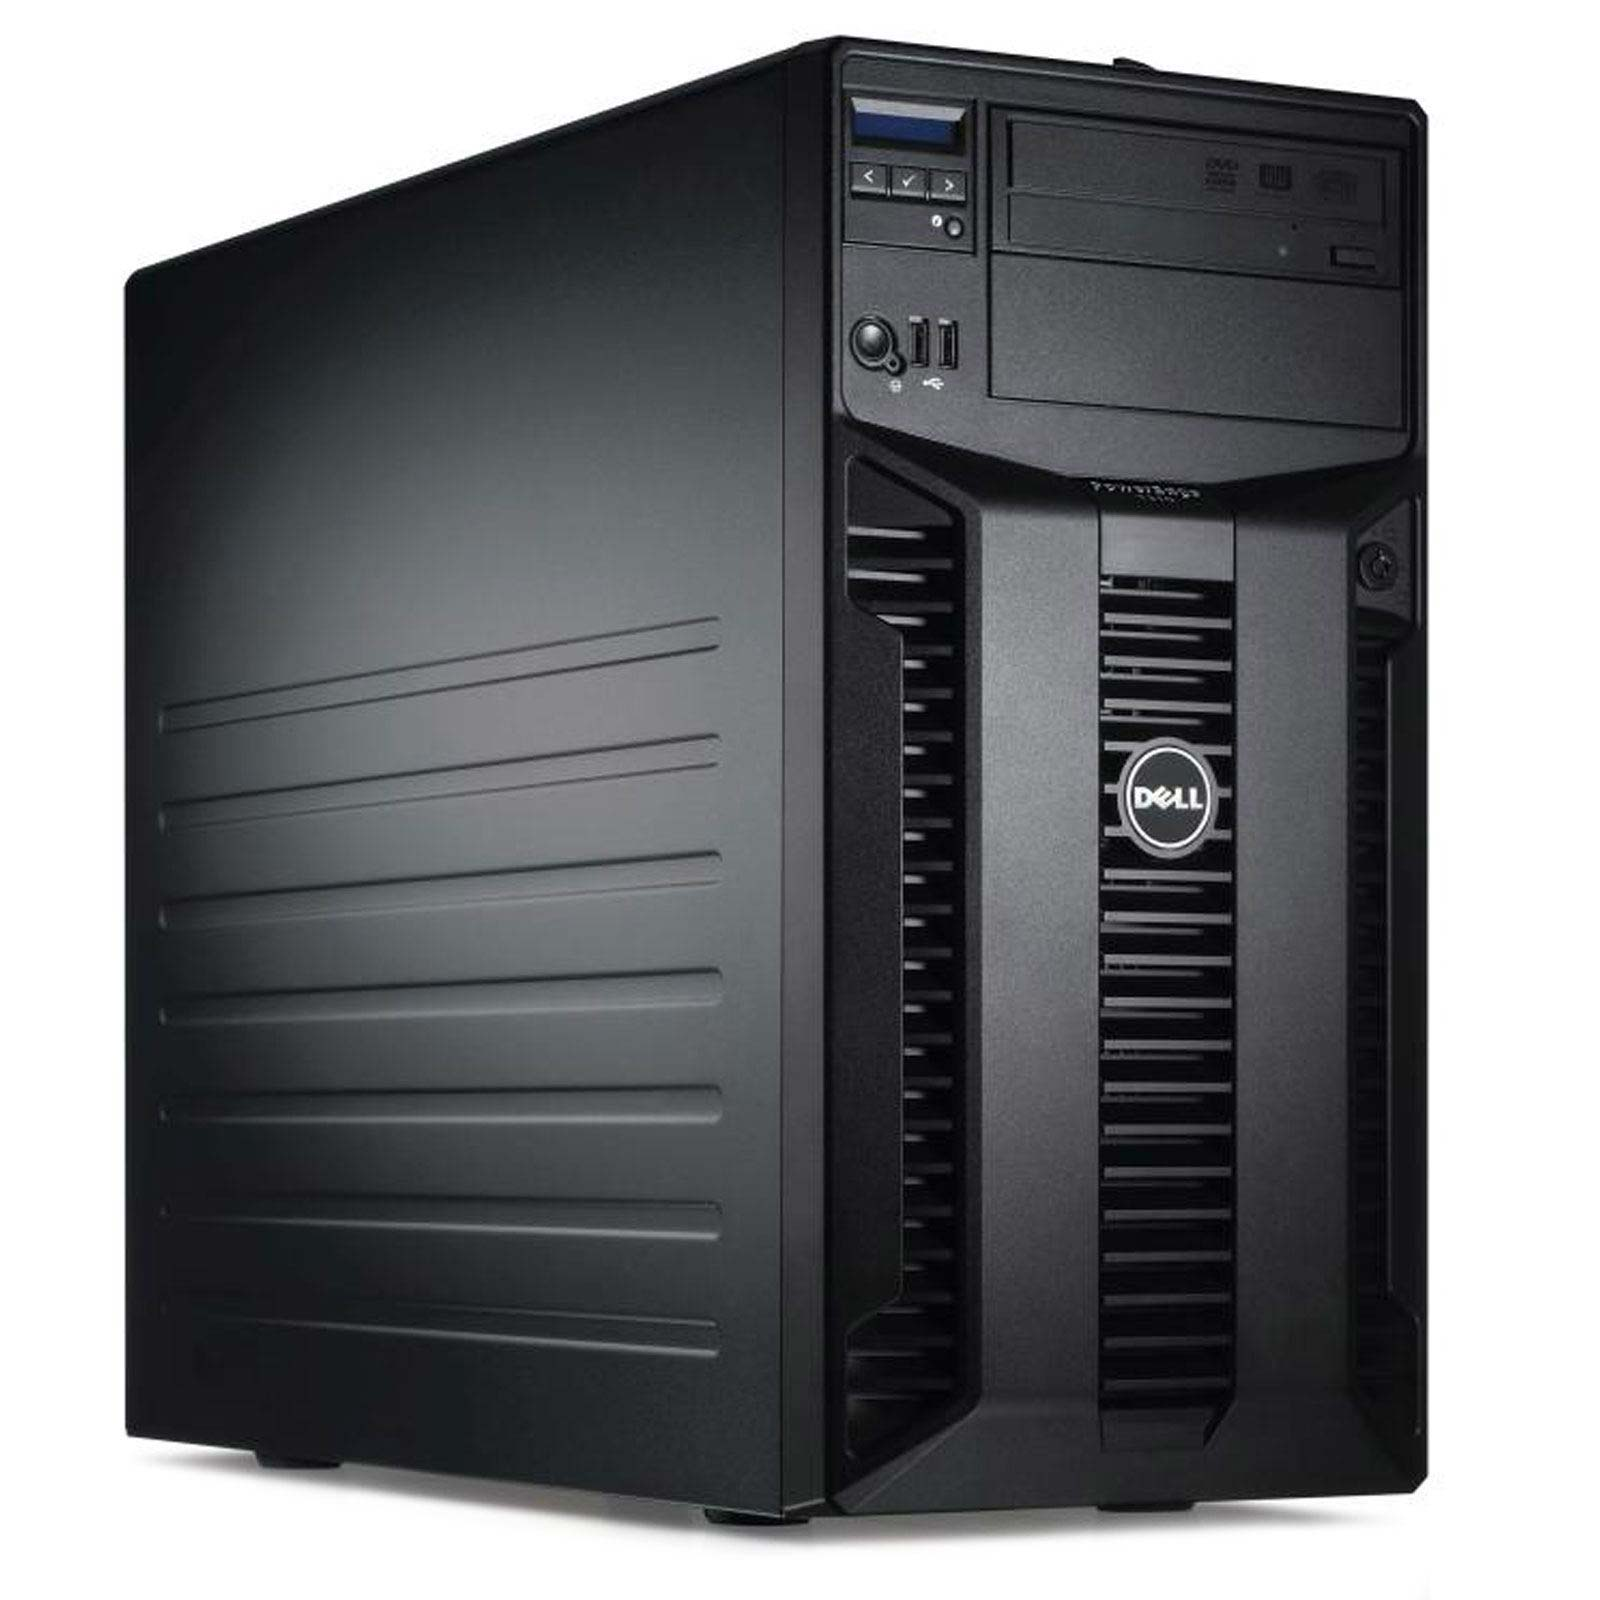 Server PowerEdge T310 Tower Chassis